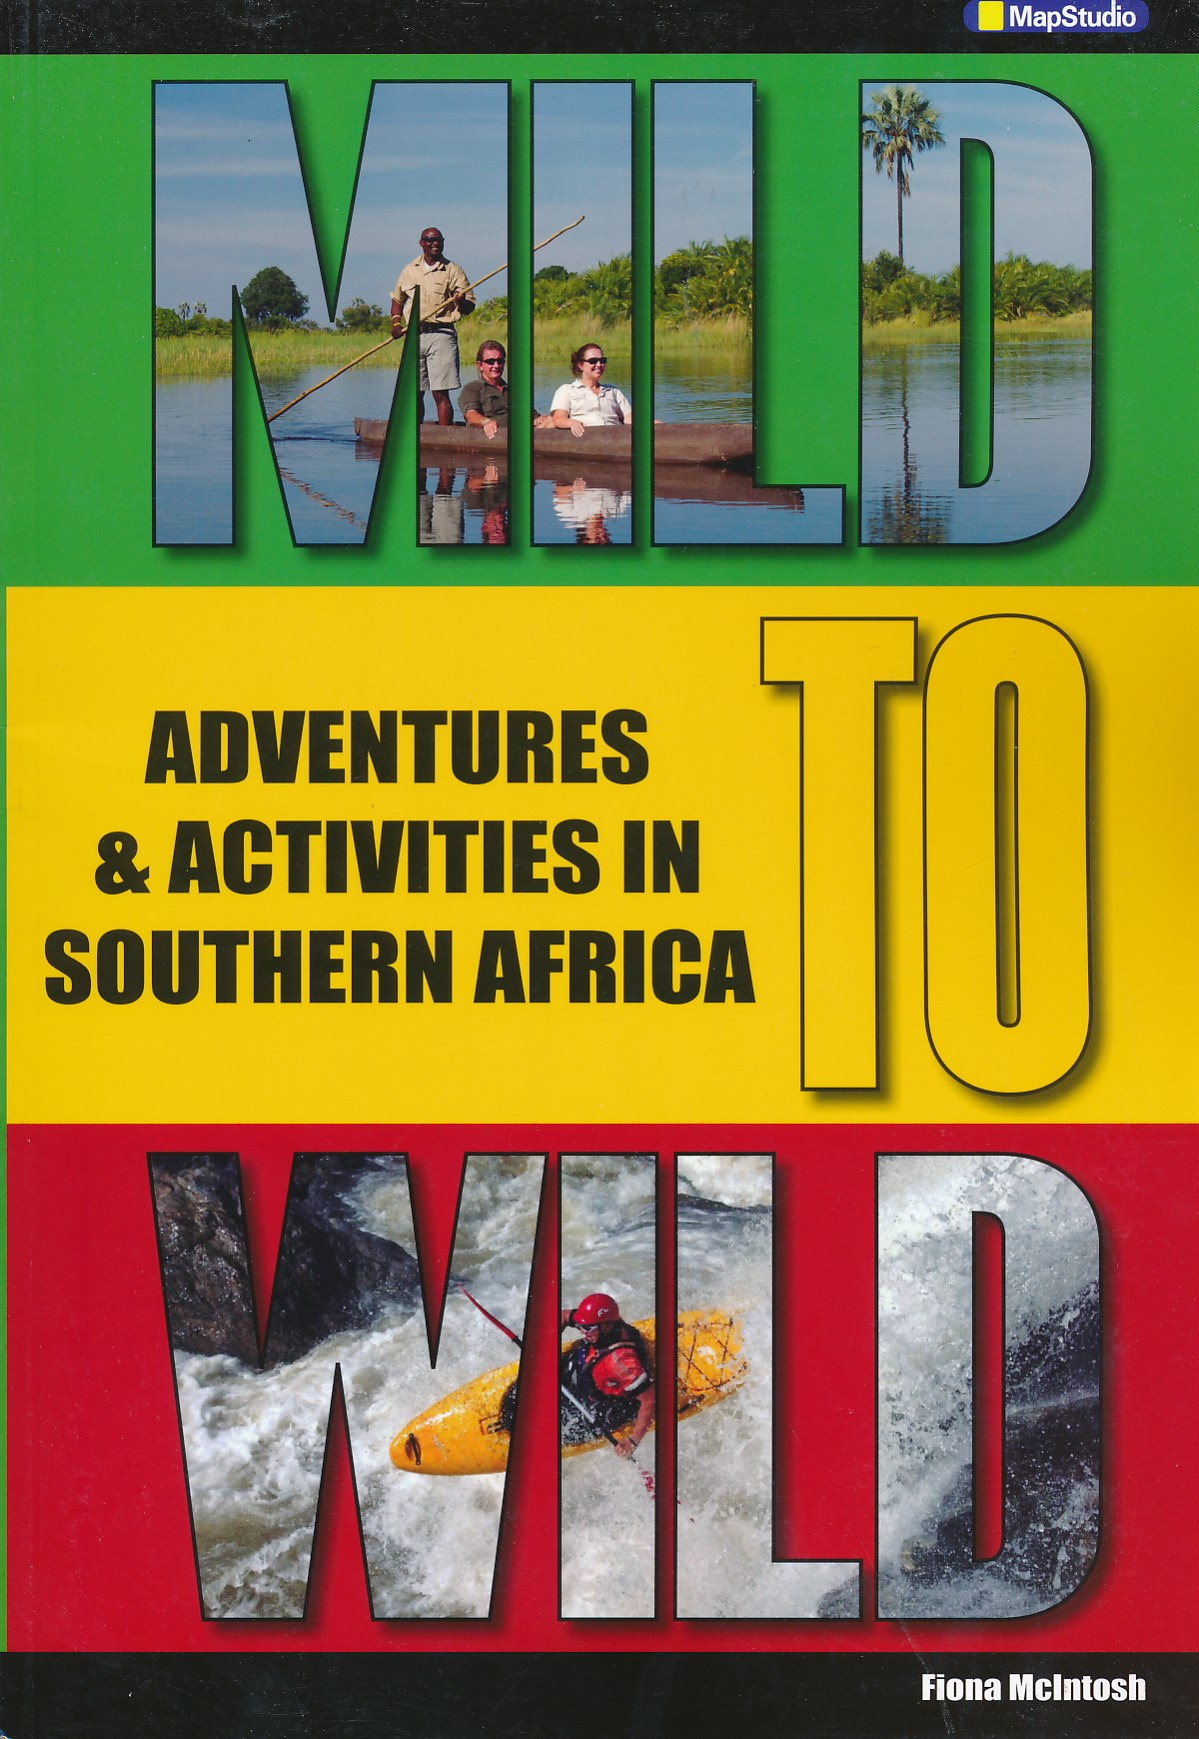 Reisgids Mild to Wild - Adventures & Activities in Southern Africa   MapStudio